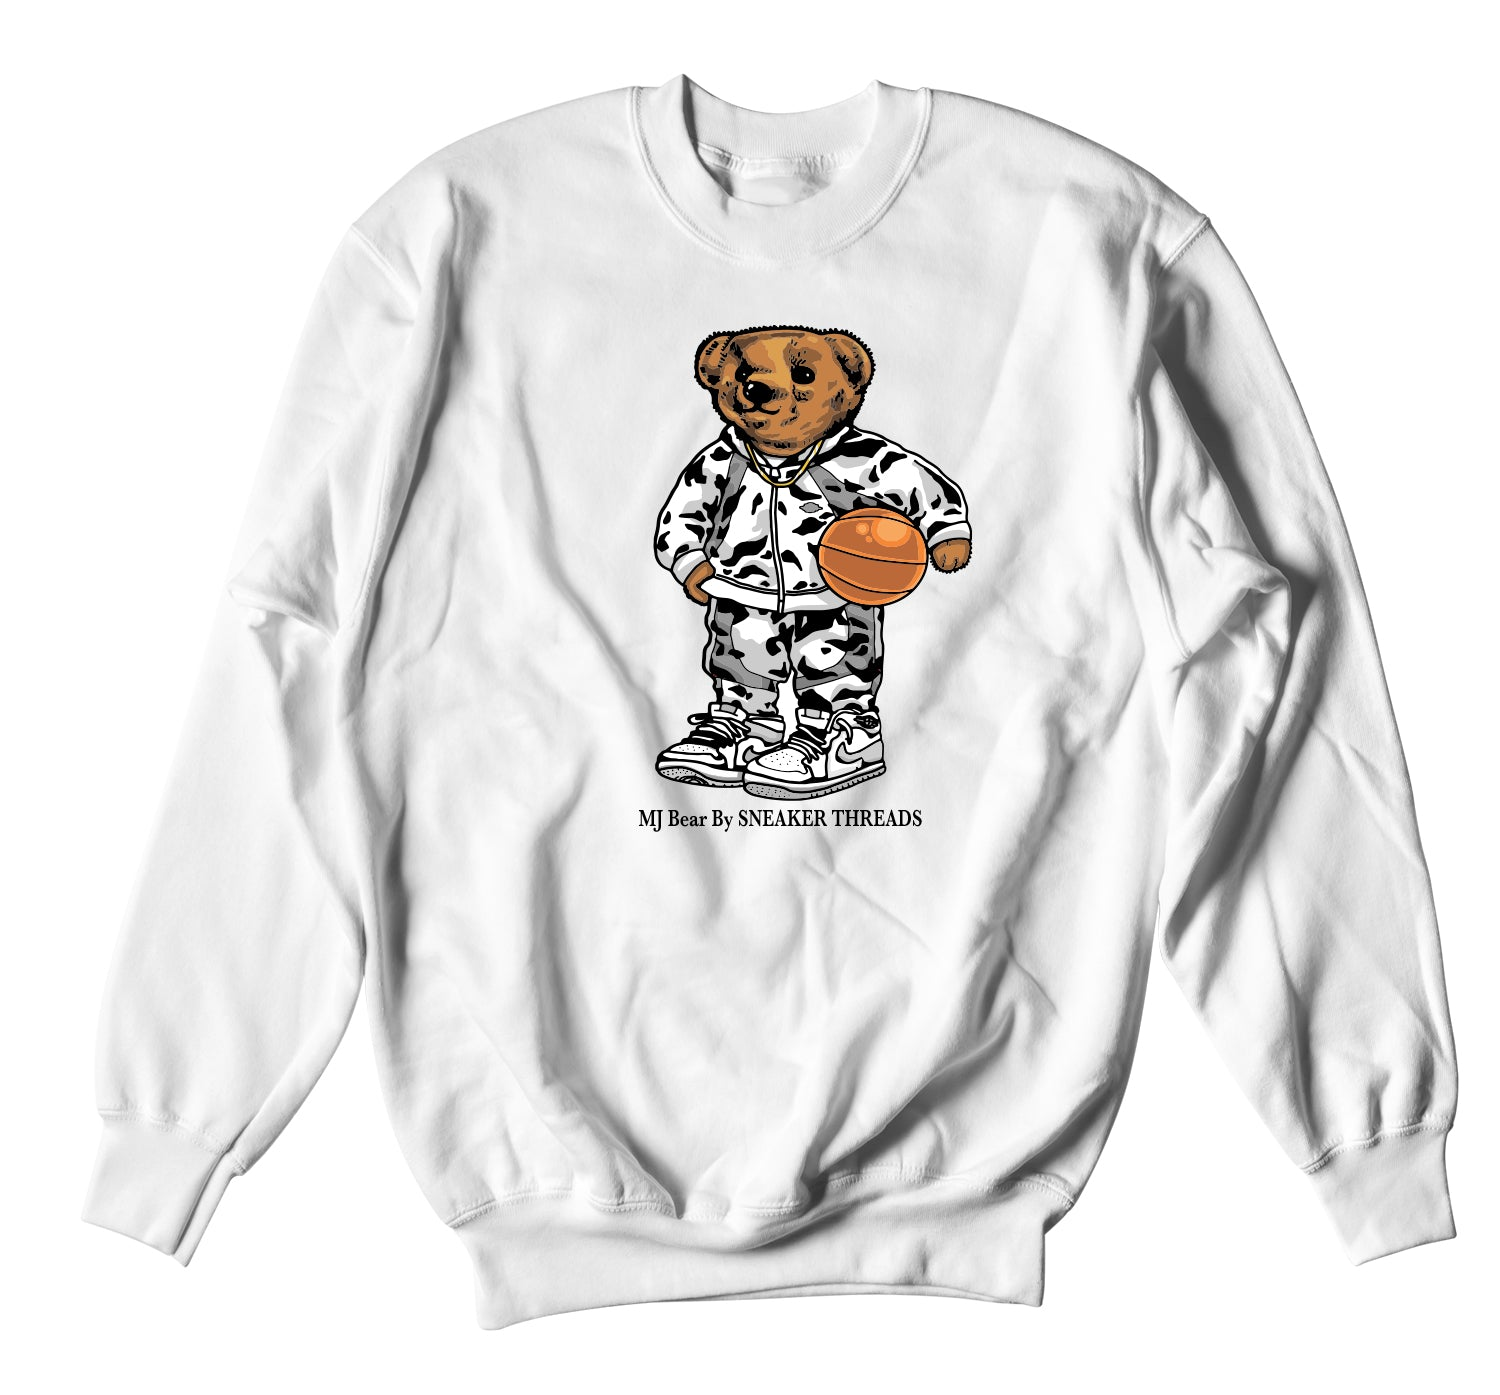 Jordan 1 Neutral Grey Sweater - MJ Bear - White